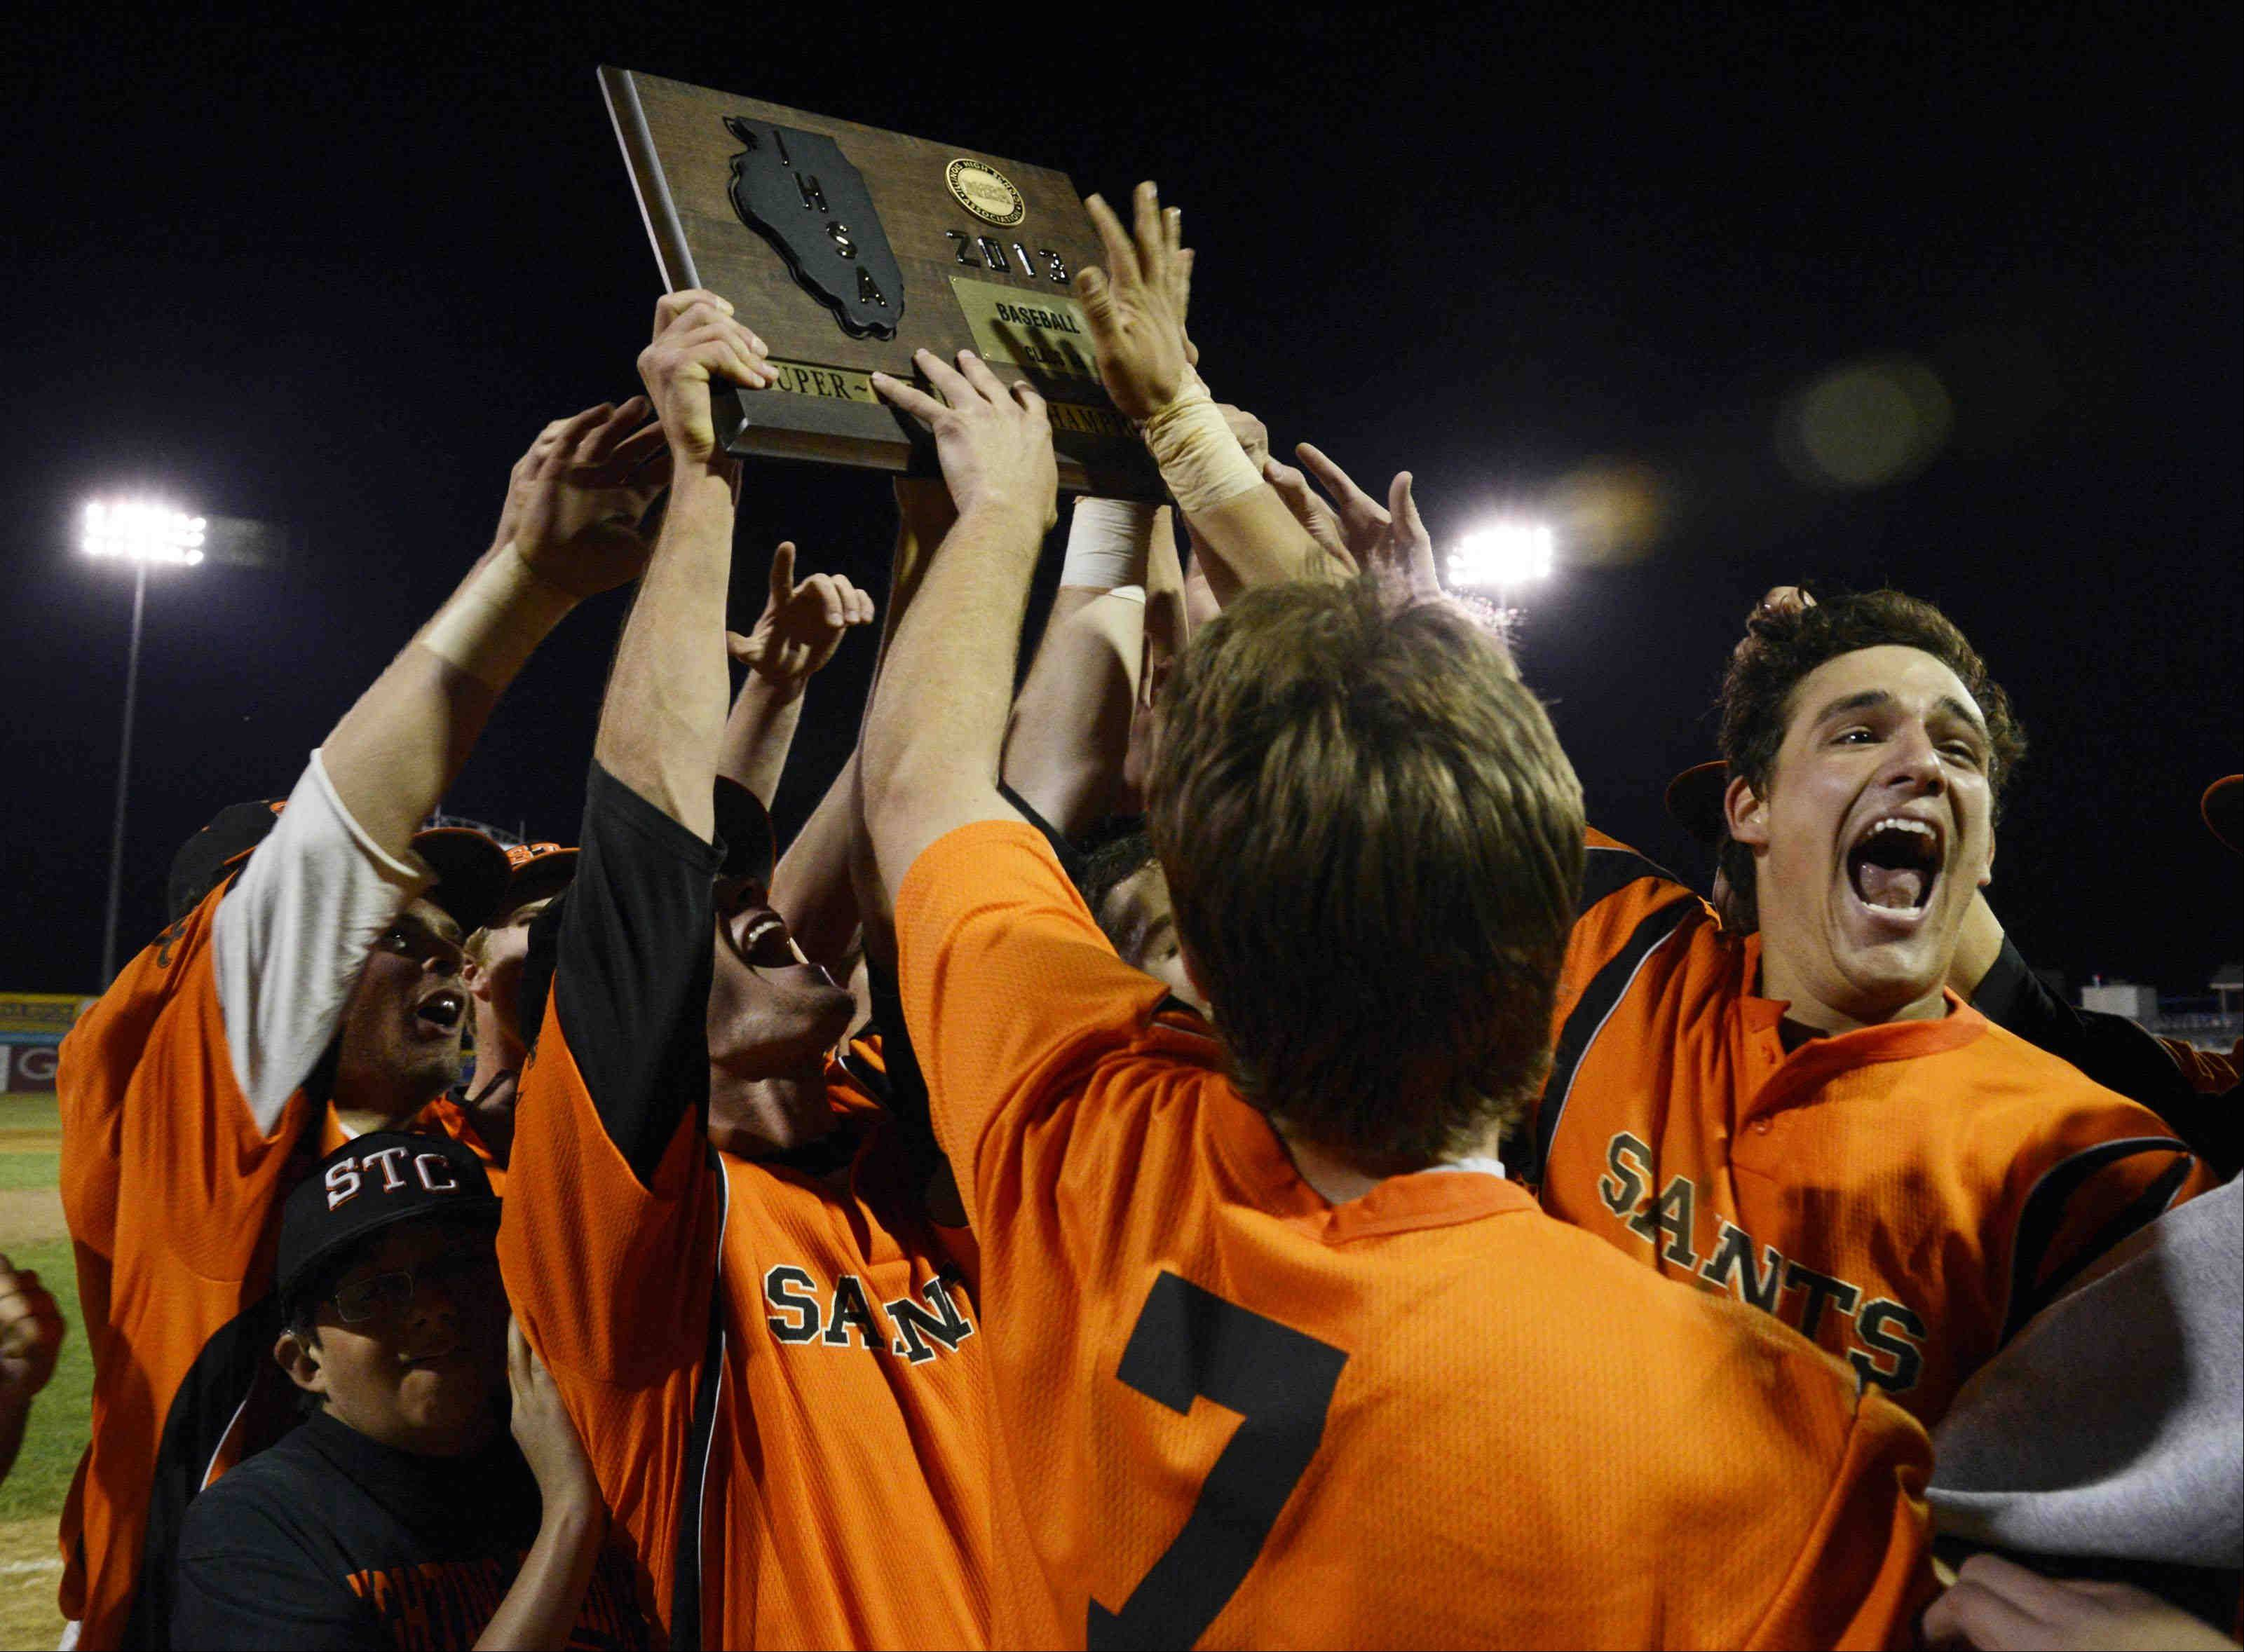 St. Charles East's Anthony Sciarrino turns to the crowd and yells as he reaches for the Class 4A supersectional plaque at RiverHawks Stadium in Rockford Monday. He had 4 RB's in the 7-2 win over Jacobs.